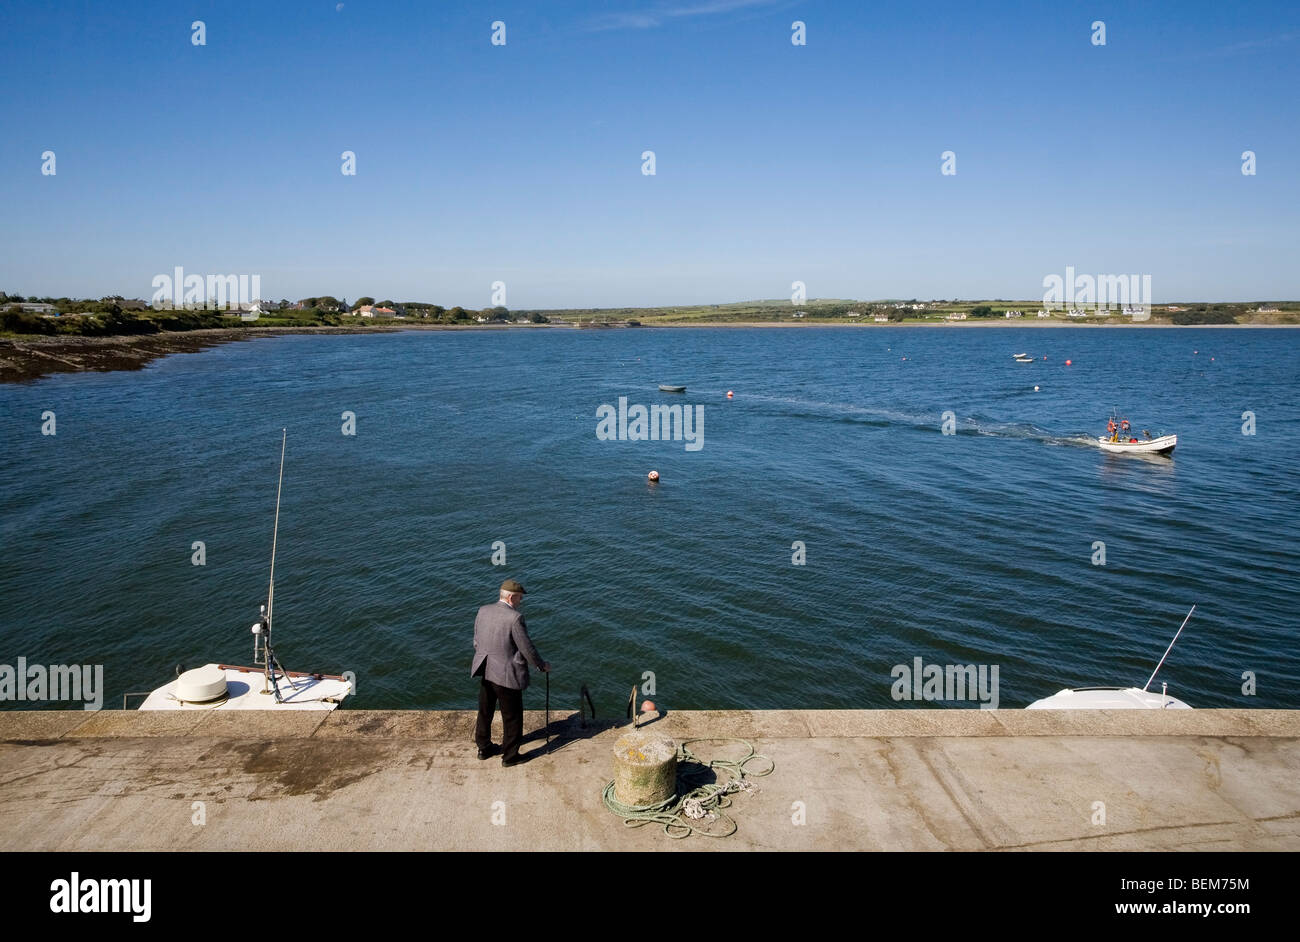 Old Man Watching Fishing Activity in Carrigaholt Fishing Harbour on the River Shannon, County Clare, Ireland - Stock Image